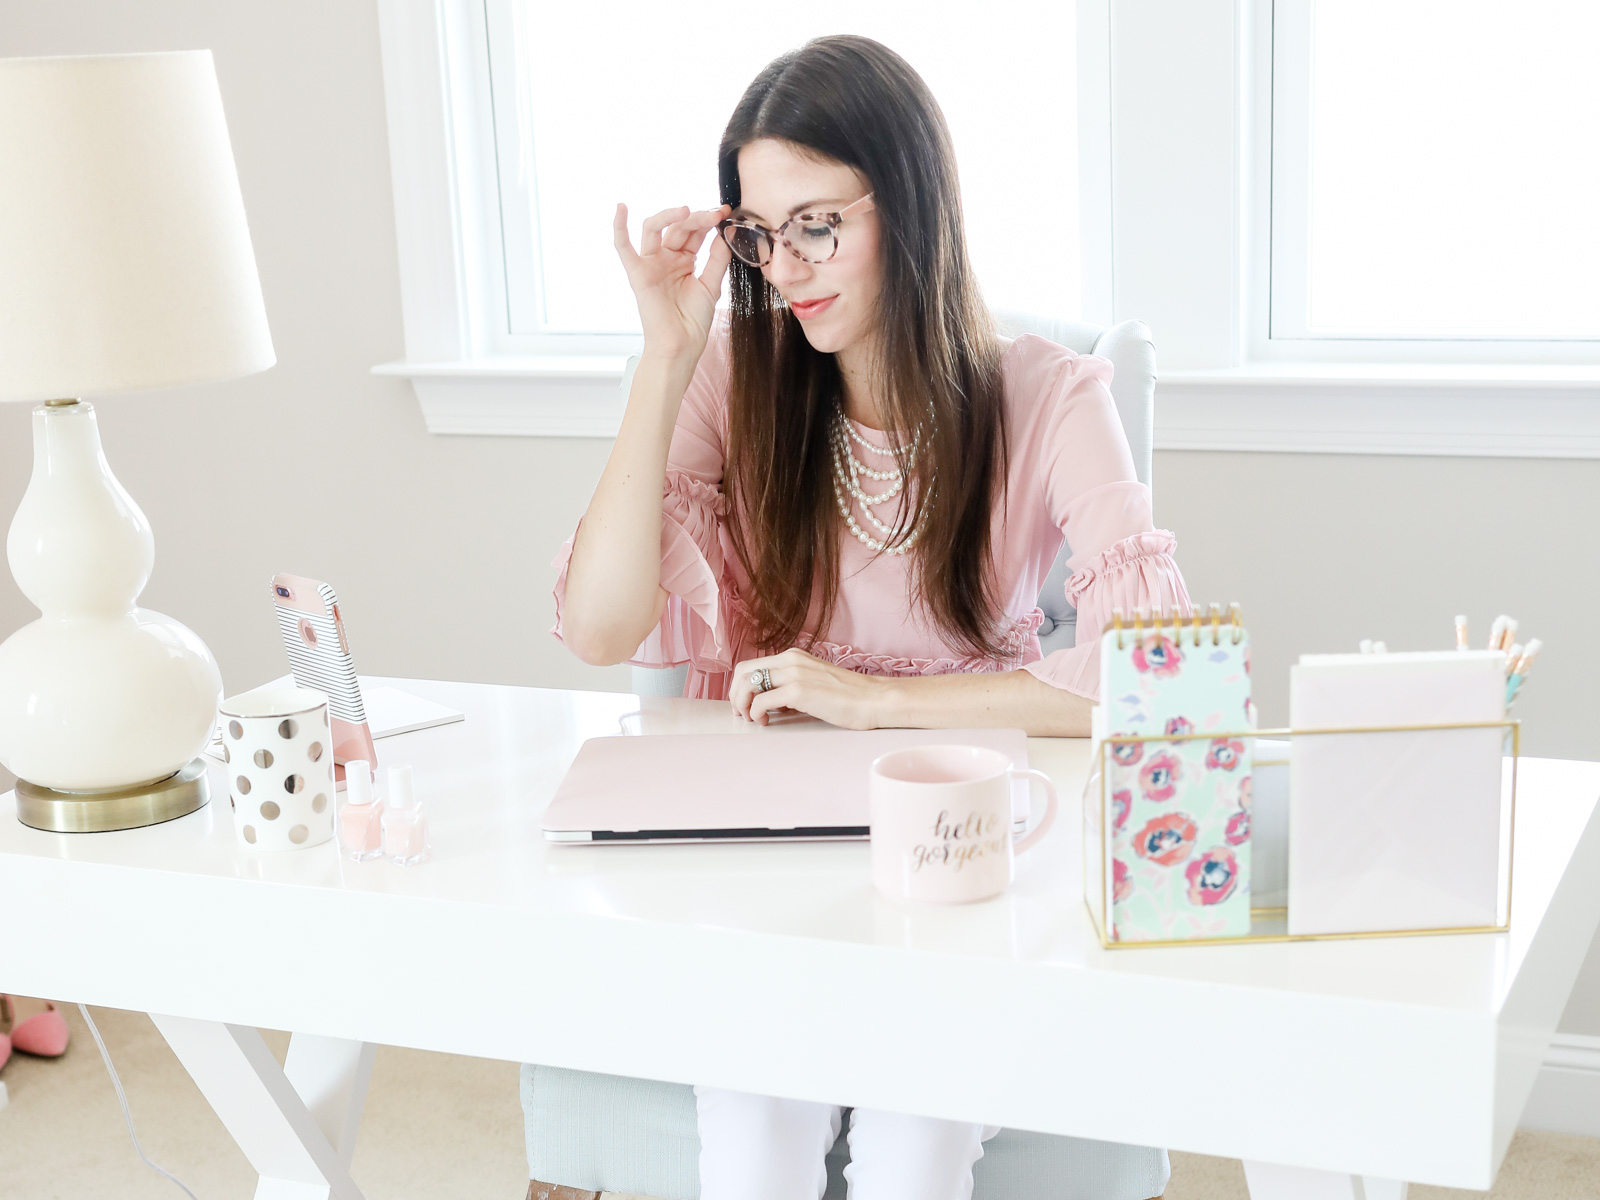 pink ruffle frill top   pink office   pink office decor   pink cloffice   every day joie by elle bowes